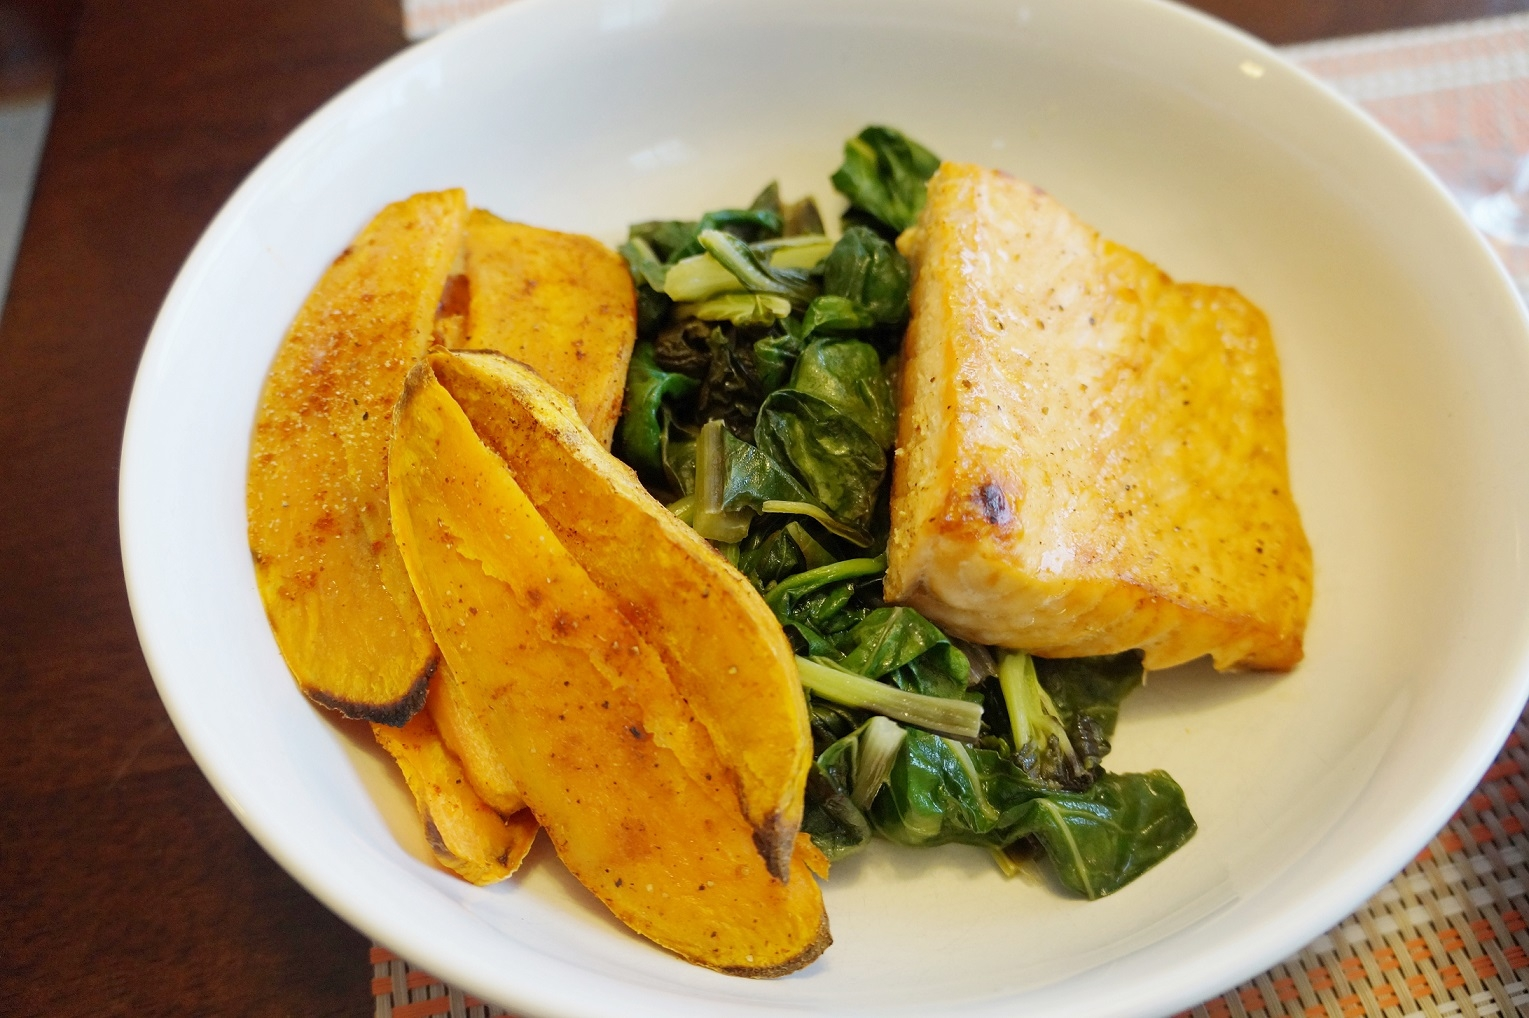 Salmon & Sweet Potato Wedges over Wilted Greens with Garlic Aioli (GF) | Busy Girl Healthy World